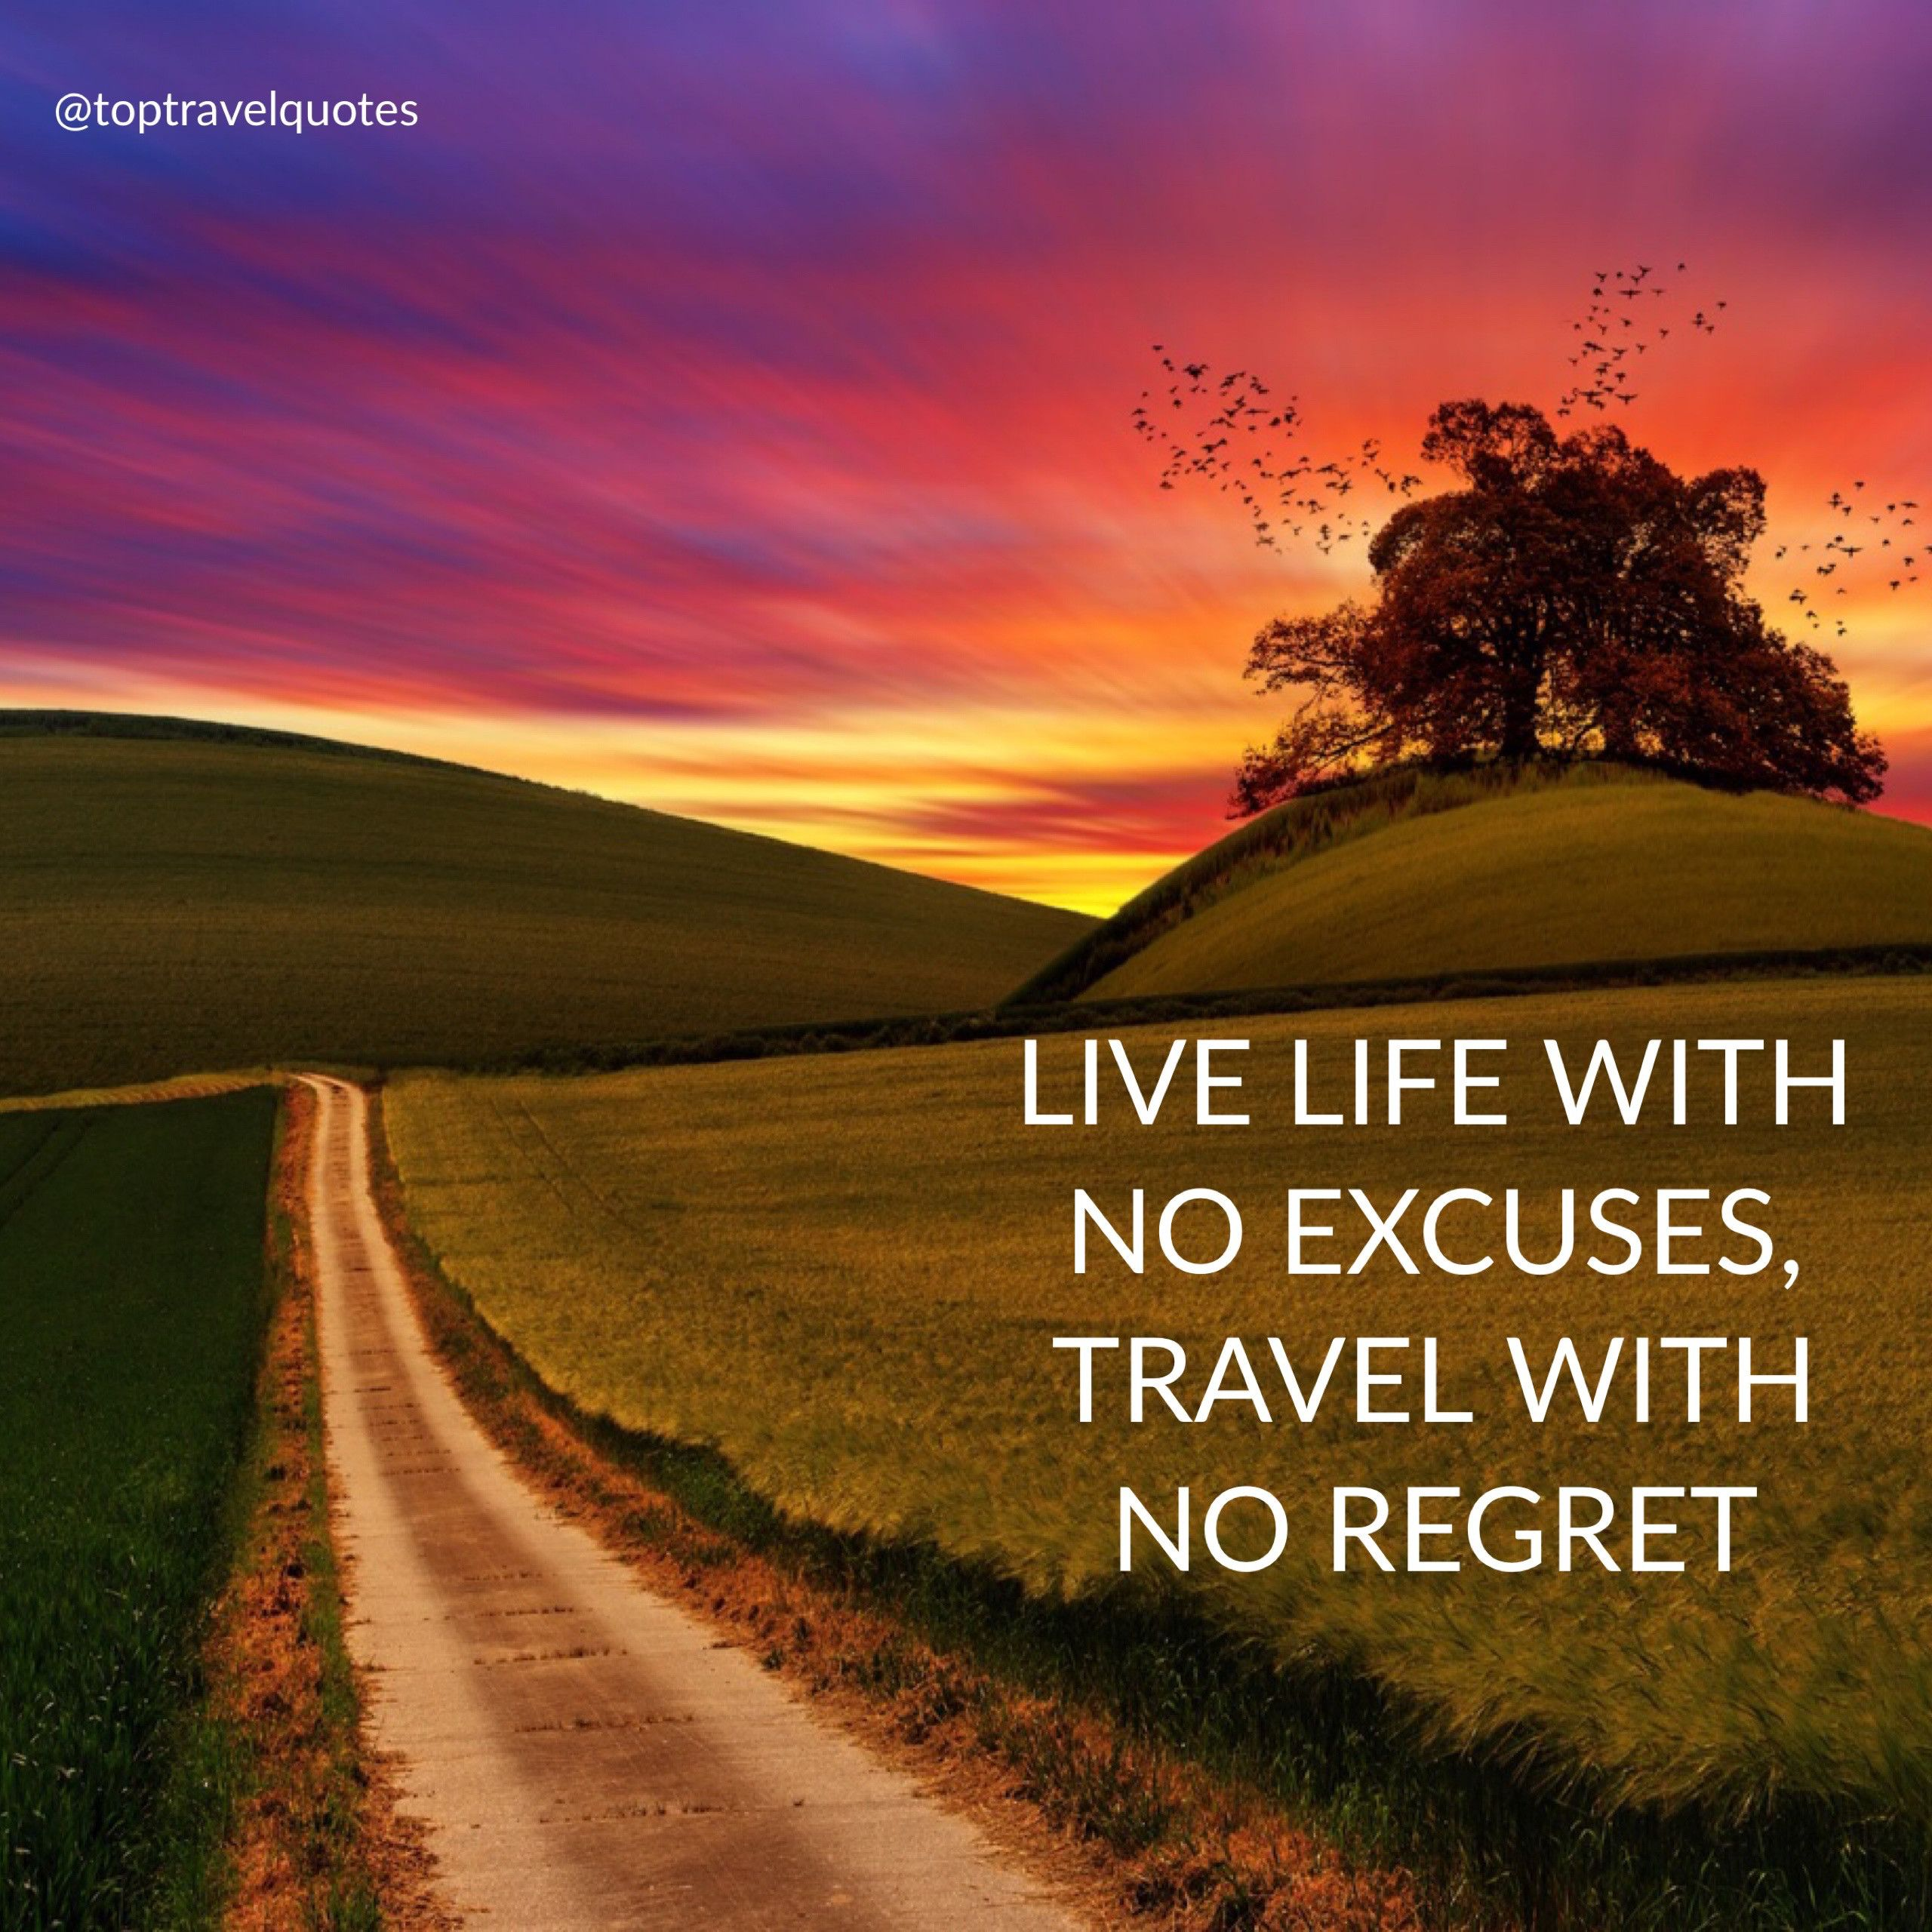 Live Life With No Excuses Travel With No Regret Travel Adventure Travel How To Memorize Things